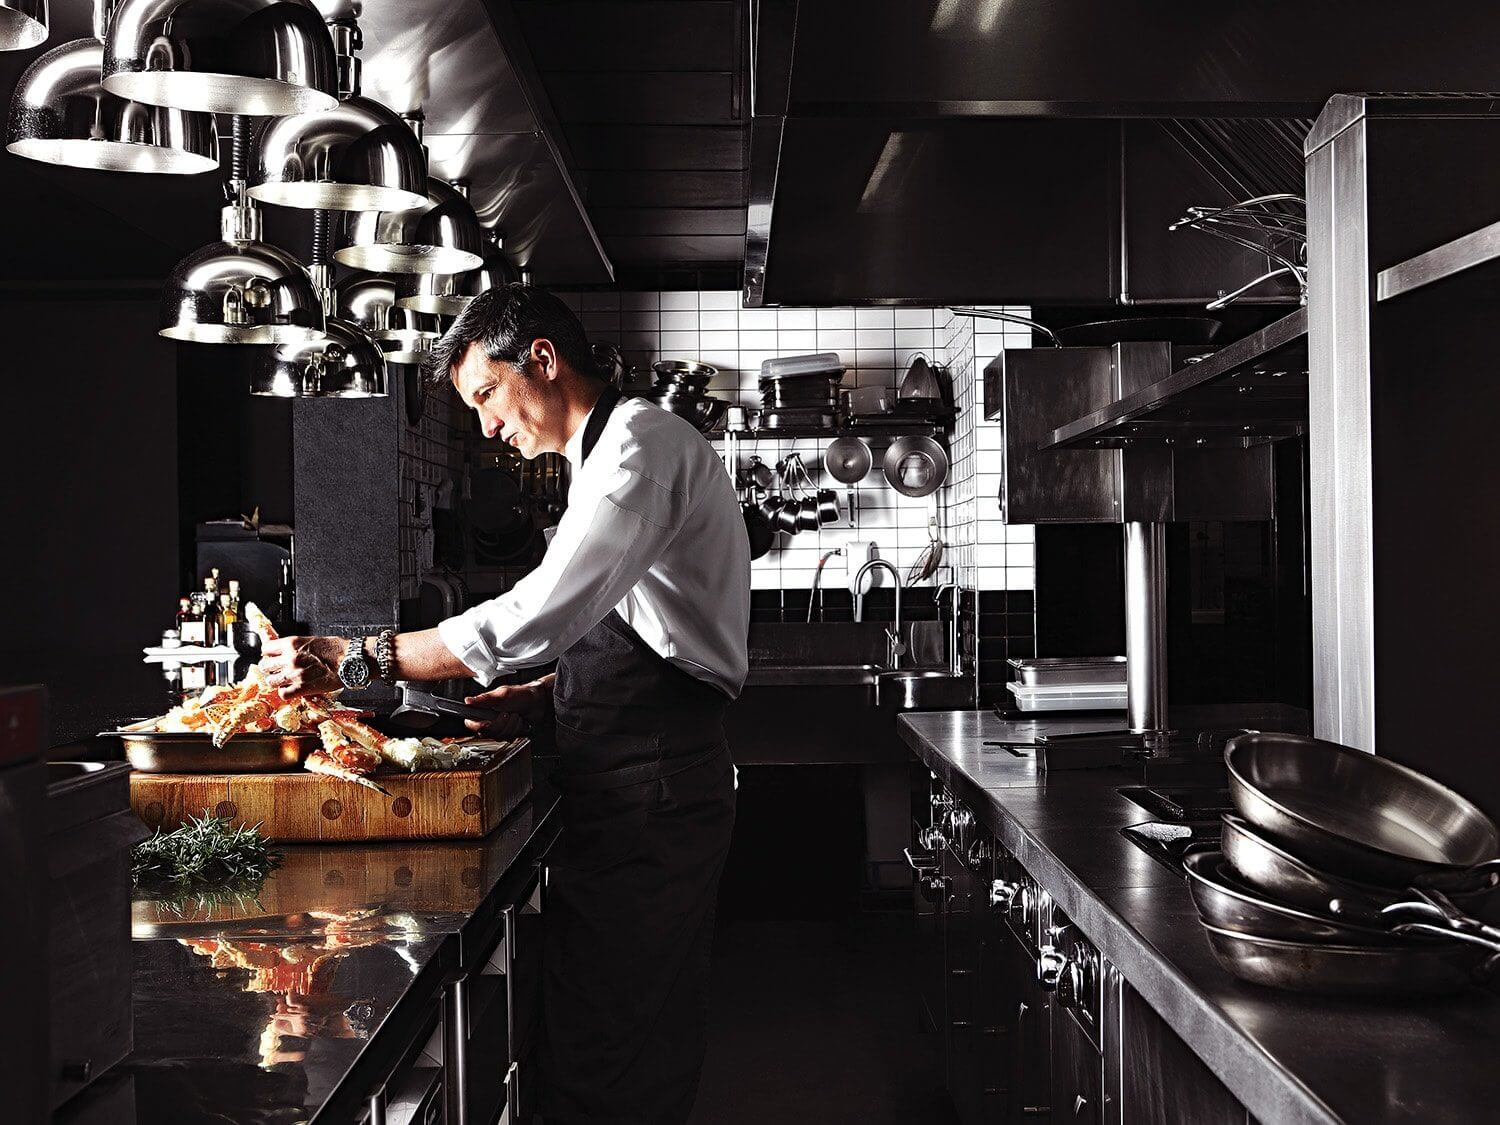 Chef David Higgs preparing food in the kitchen of his restaurant, Marble. Photo by Elsa Young.